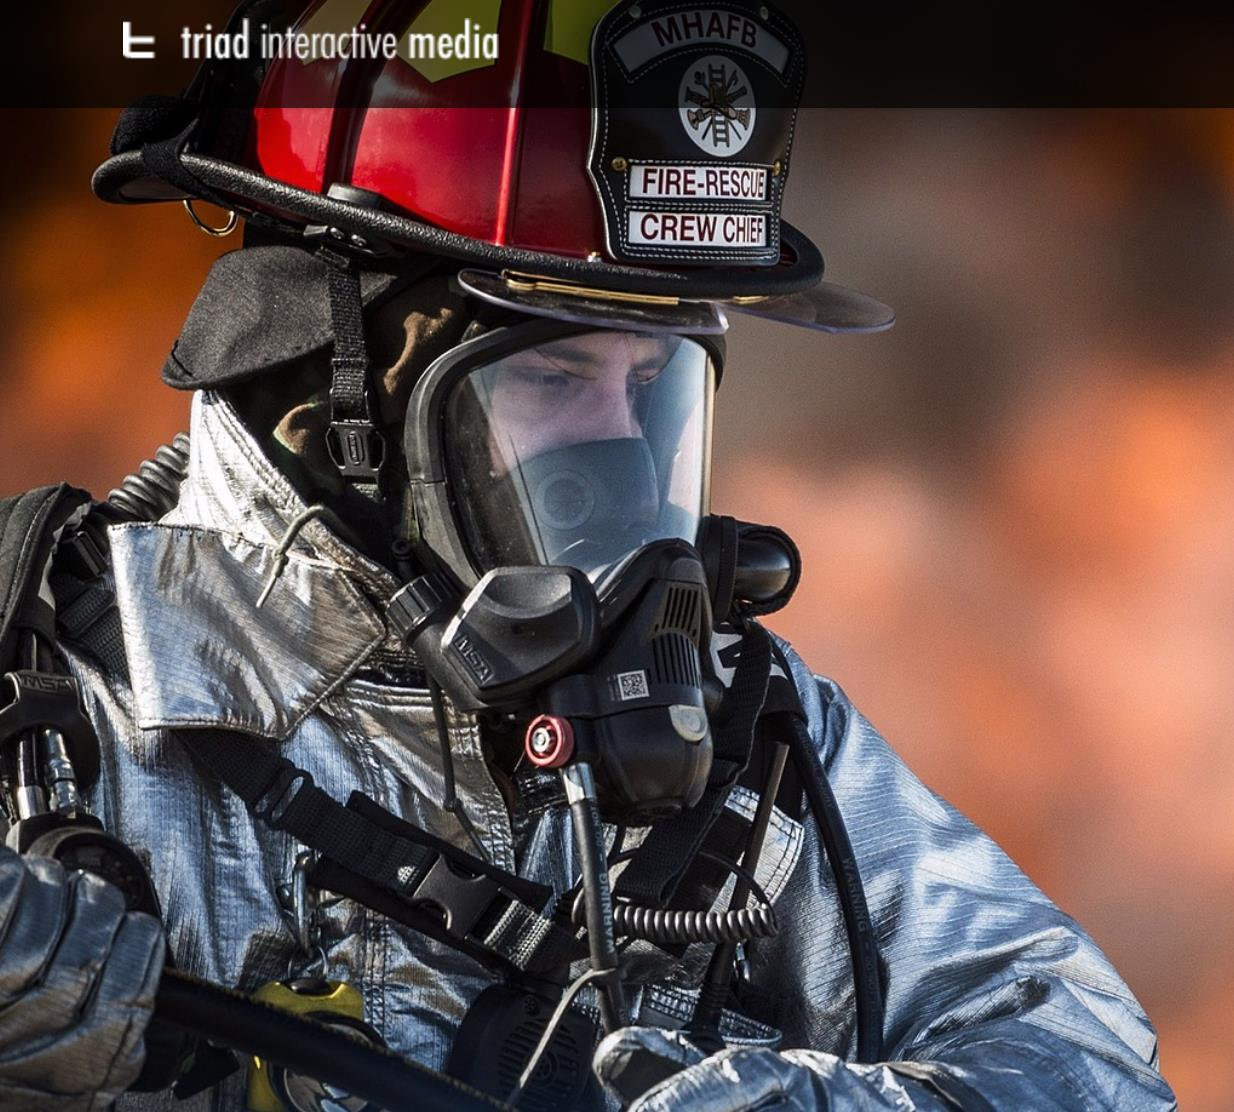 firefighter Training Triad Interactive Media